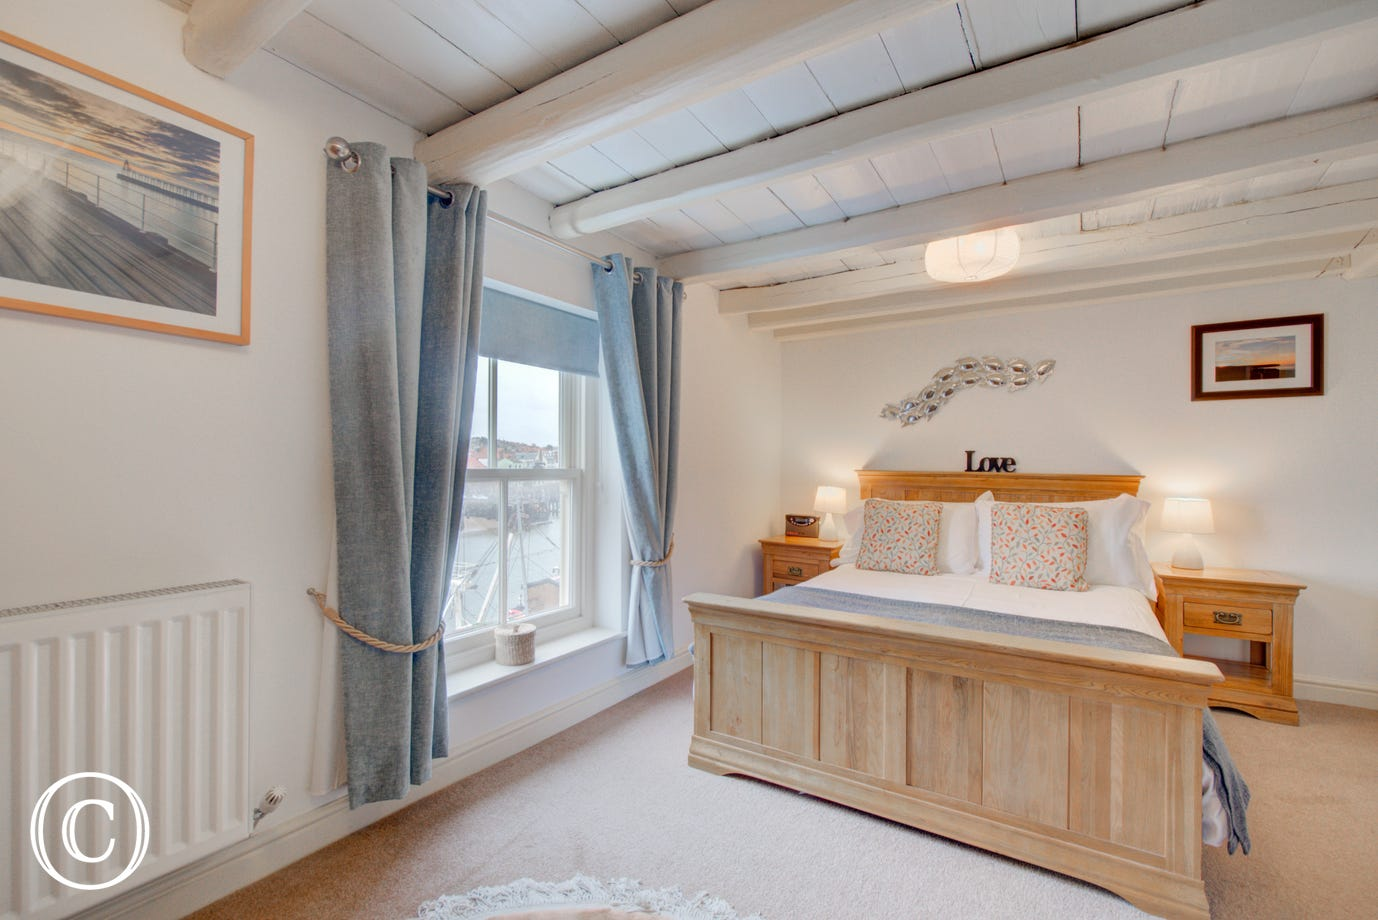 Characterful double Bedroom with beamed ceiling and stunning window views.